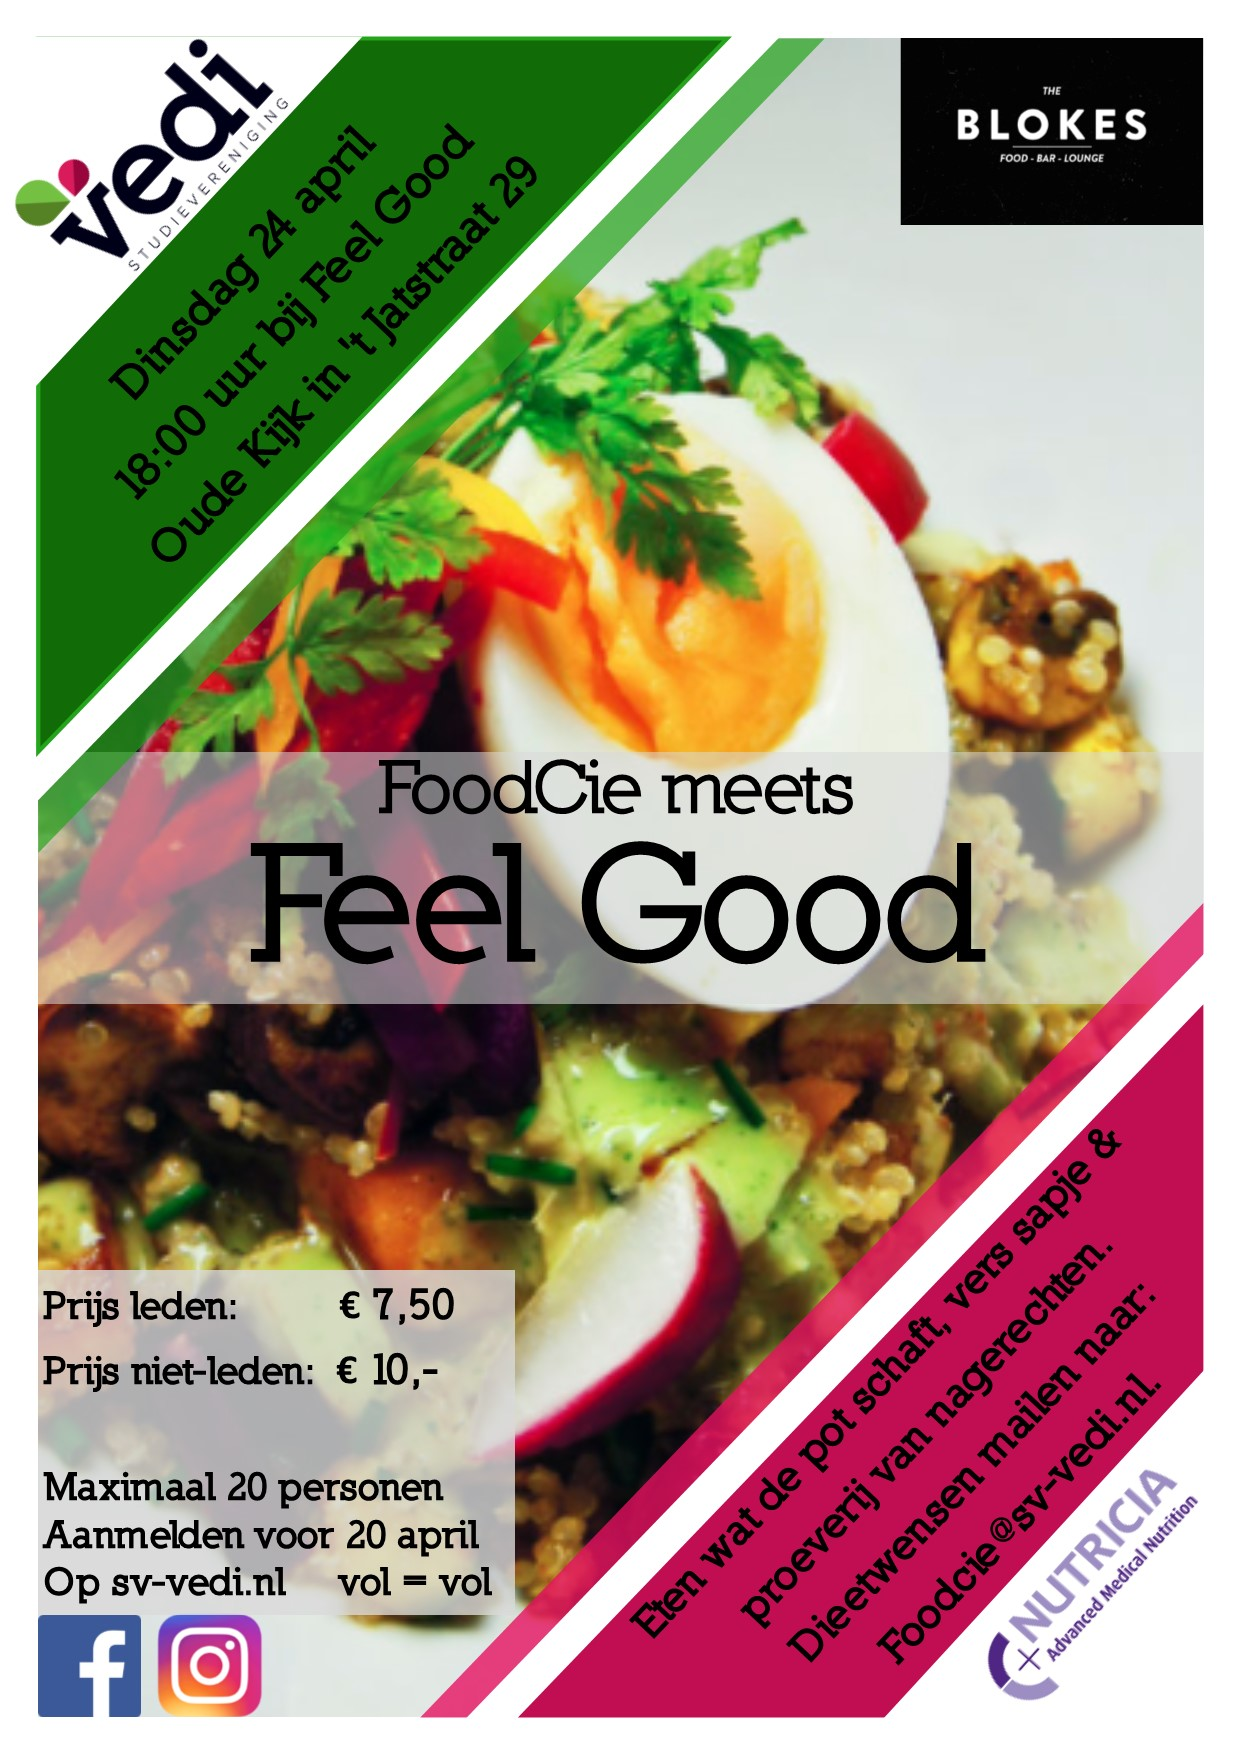 FoodCie meets Feel Good